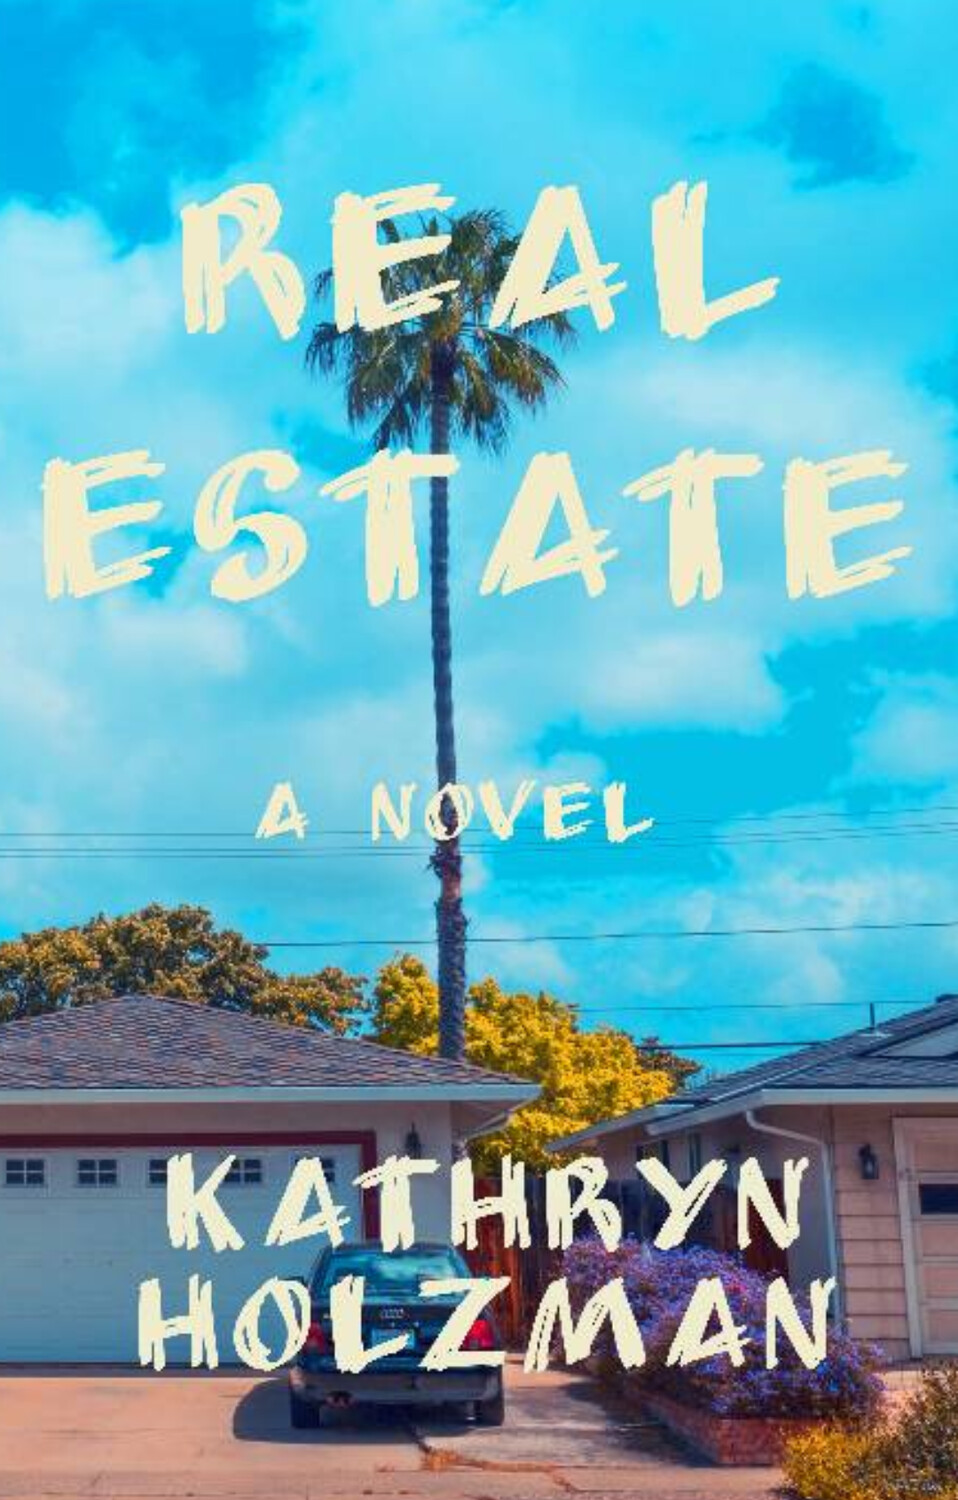 Real Estate, by Kathryn Holzman